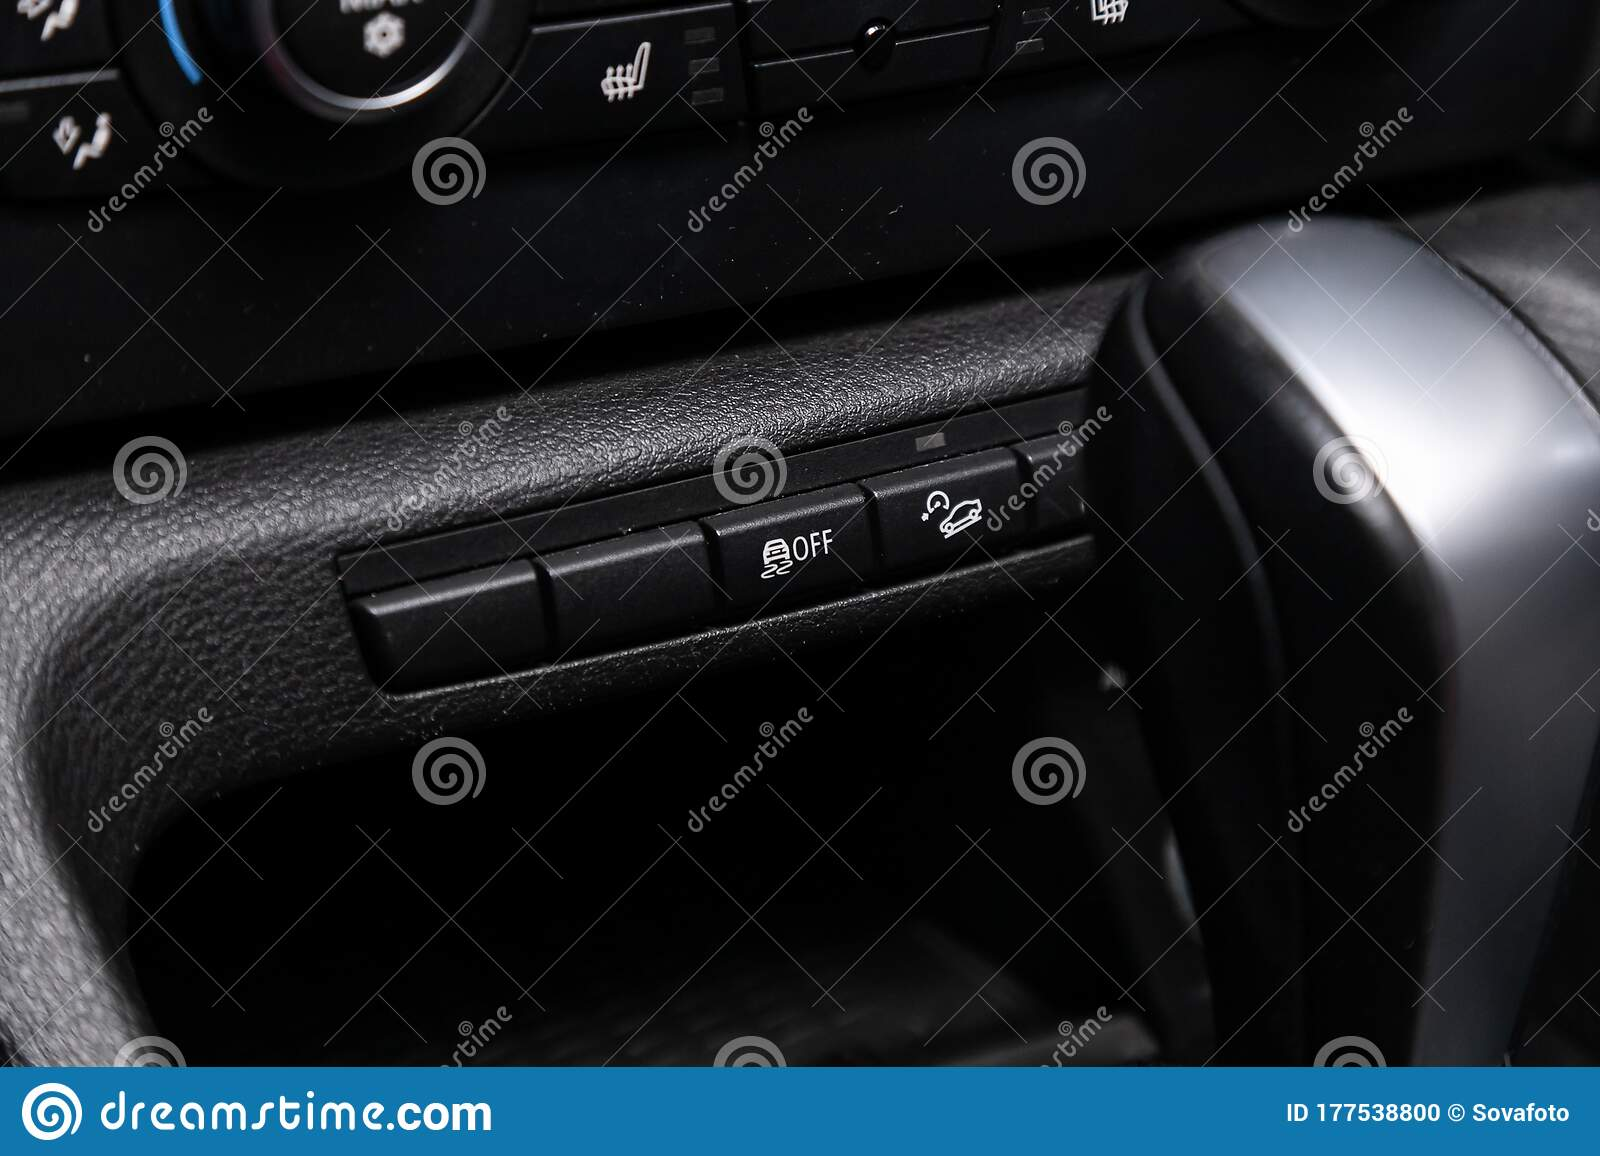 Novosibirsk Russia March 22 2020 Bmw X1 Editorial Image Image Of Adjustment Modern 177538800